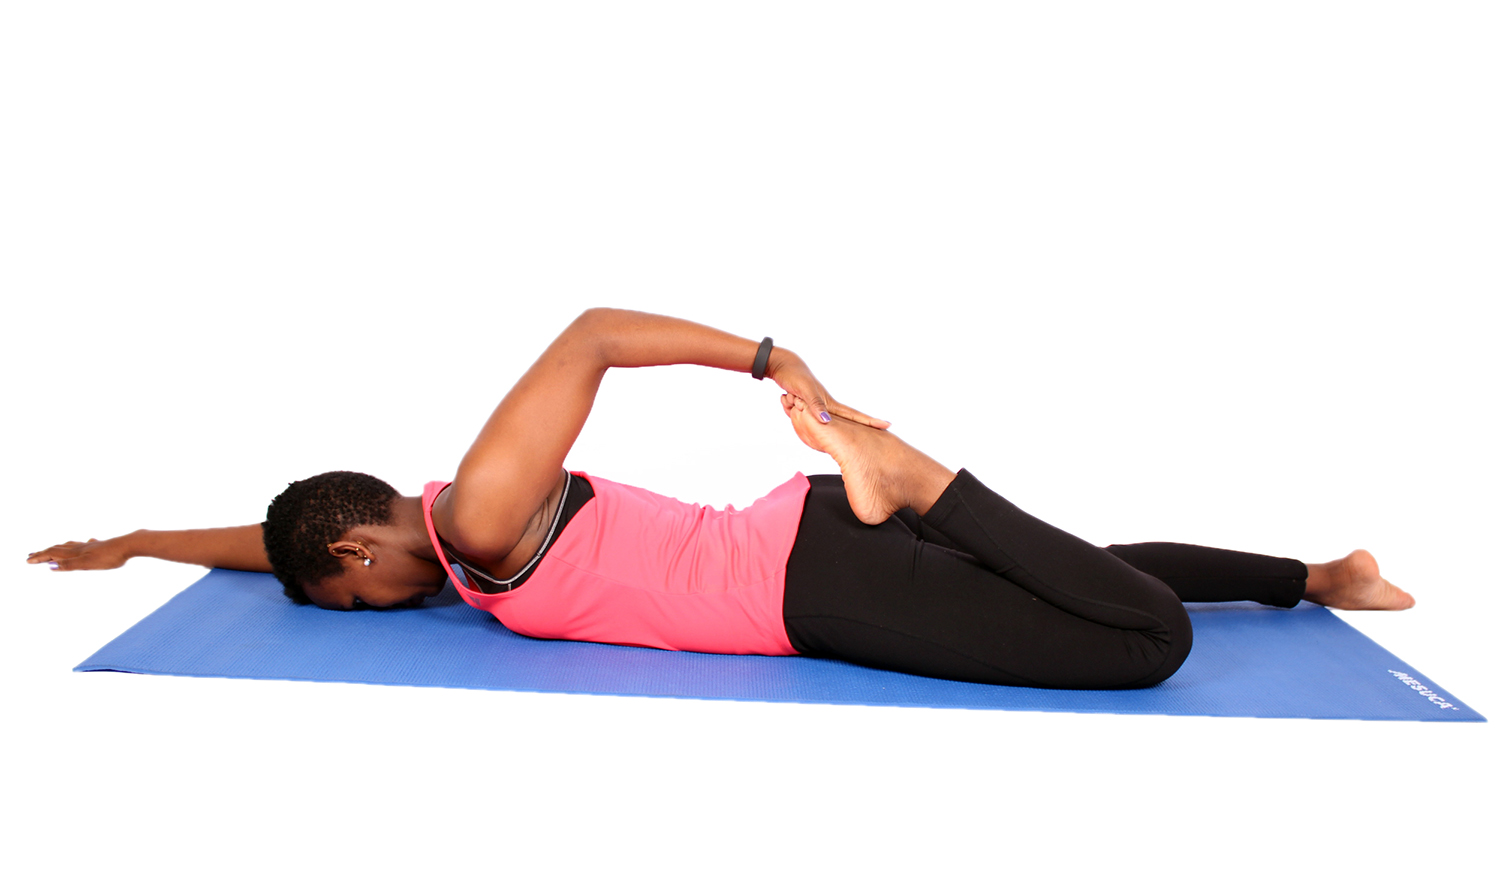 Fit woman stretching quadriceps lying face down